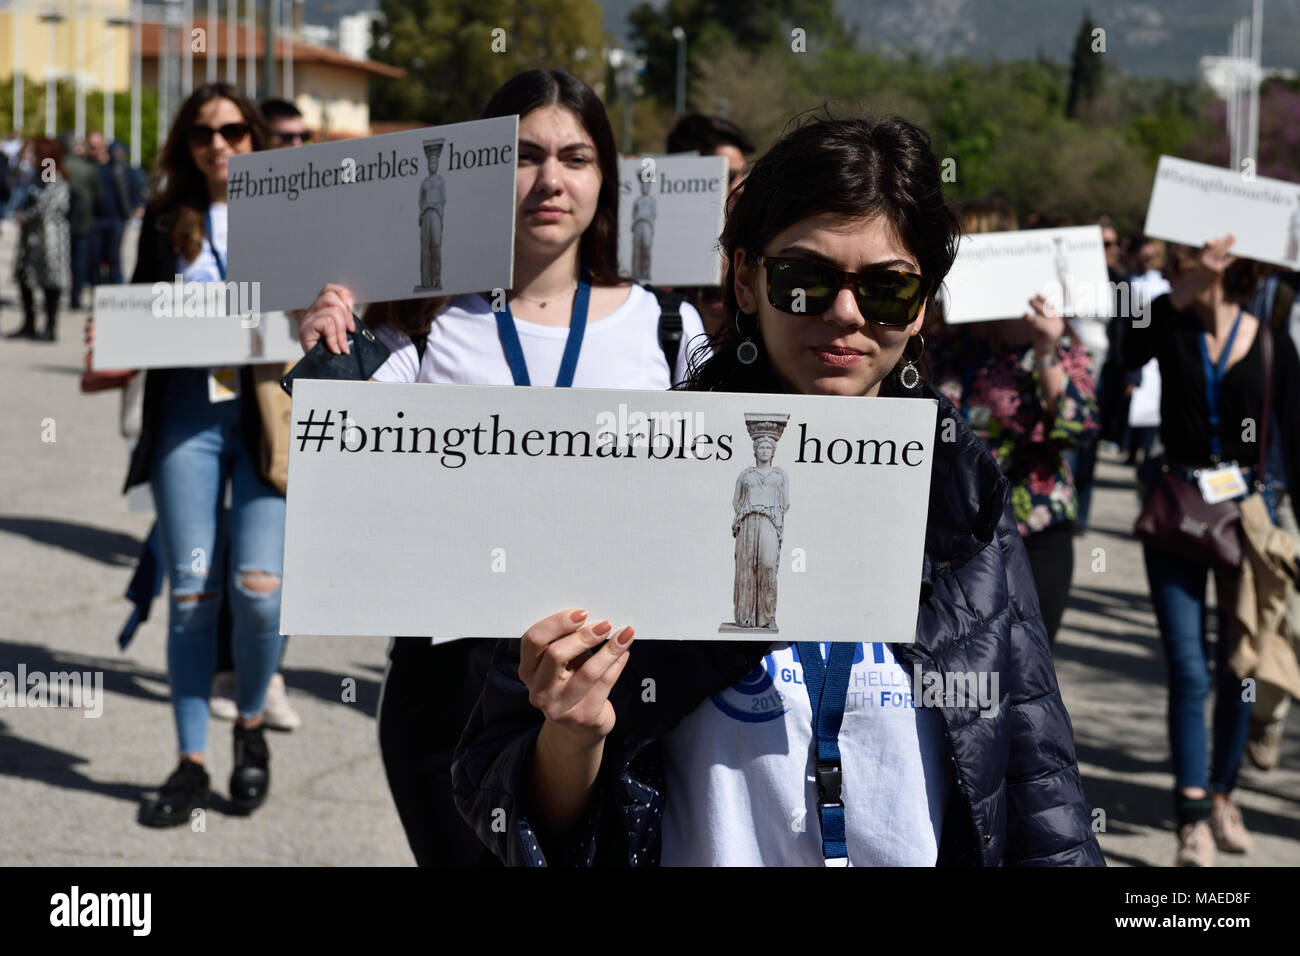 Athens, Greece, 1st April, 2018. Members of the Hellenic Youth in Action, a Greek diaspora youth forum, march holding placards demanding the return of the Parthenon marbles in Athens, Greece. Credit: Nicolas Koutsokostas/Alamy Live News. - Stock Image